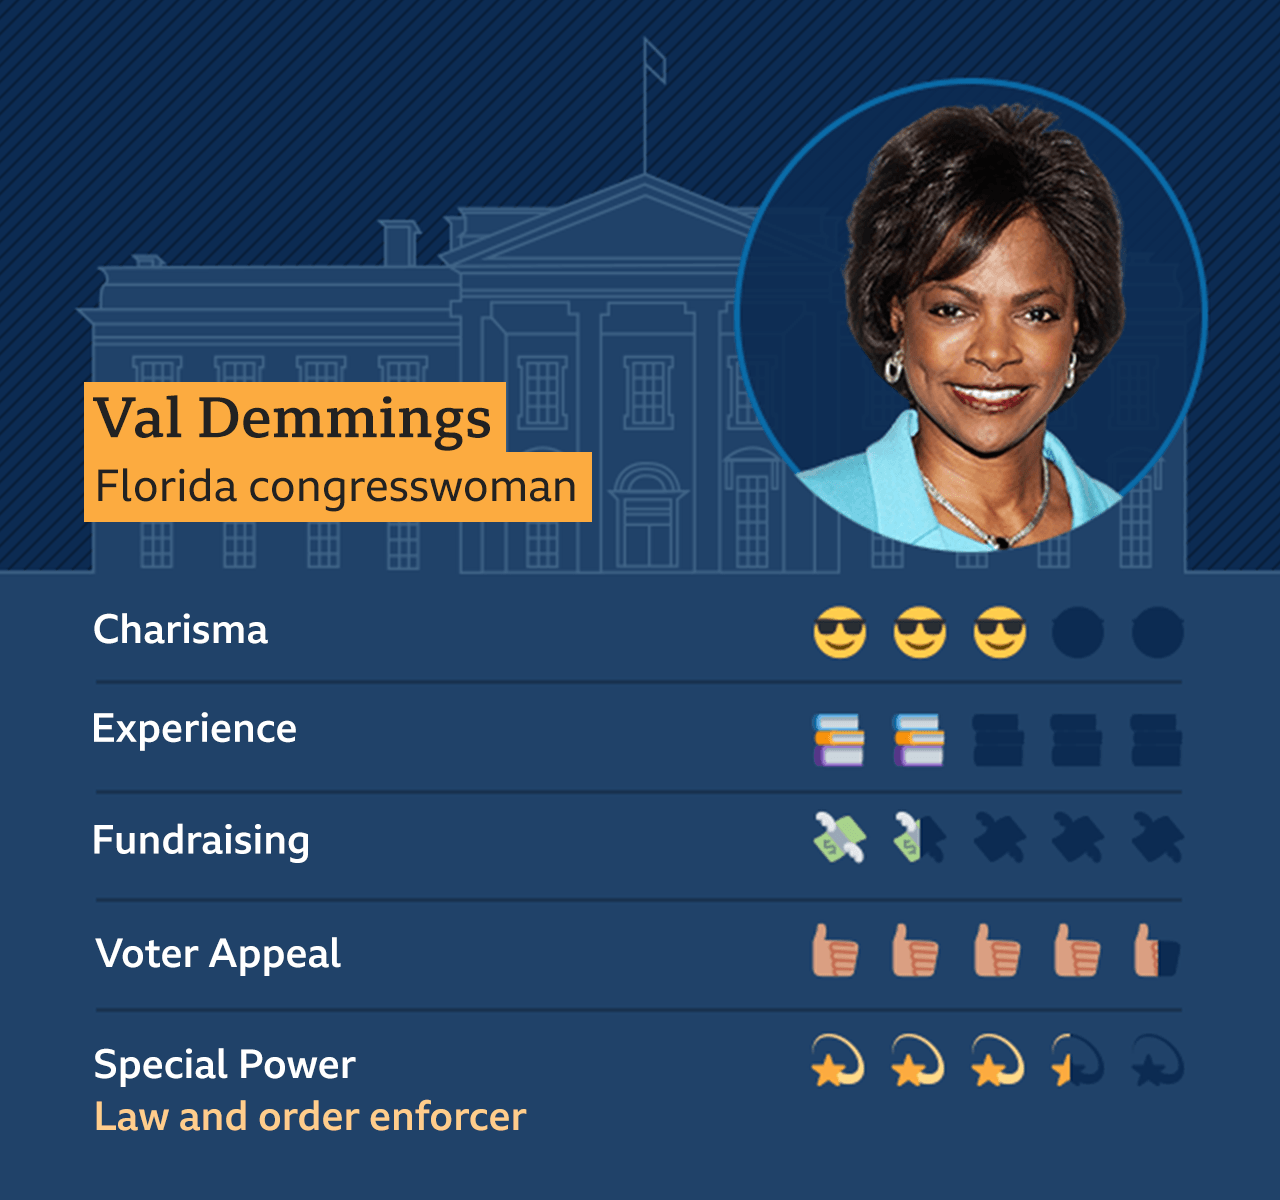 Graphic of Val Demmings, Florida congresswoman: Charisma - 3, Experience - 2, Fundraising - 1.5, Voter appeal - 4.5, Special Power - Law and order enforcer - 3.5